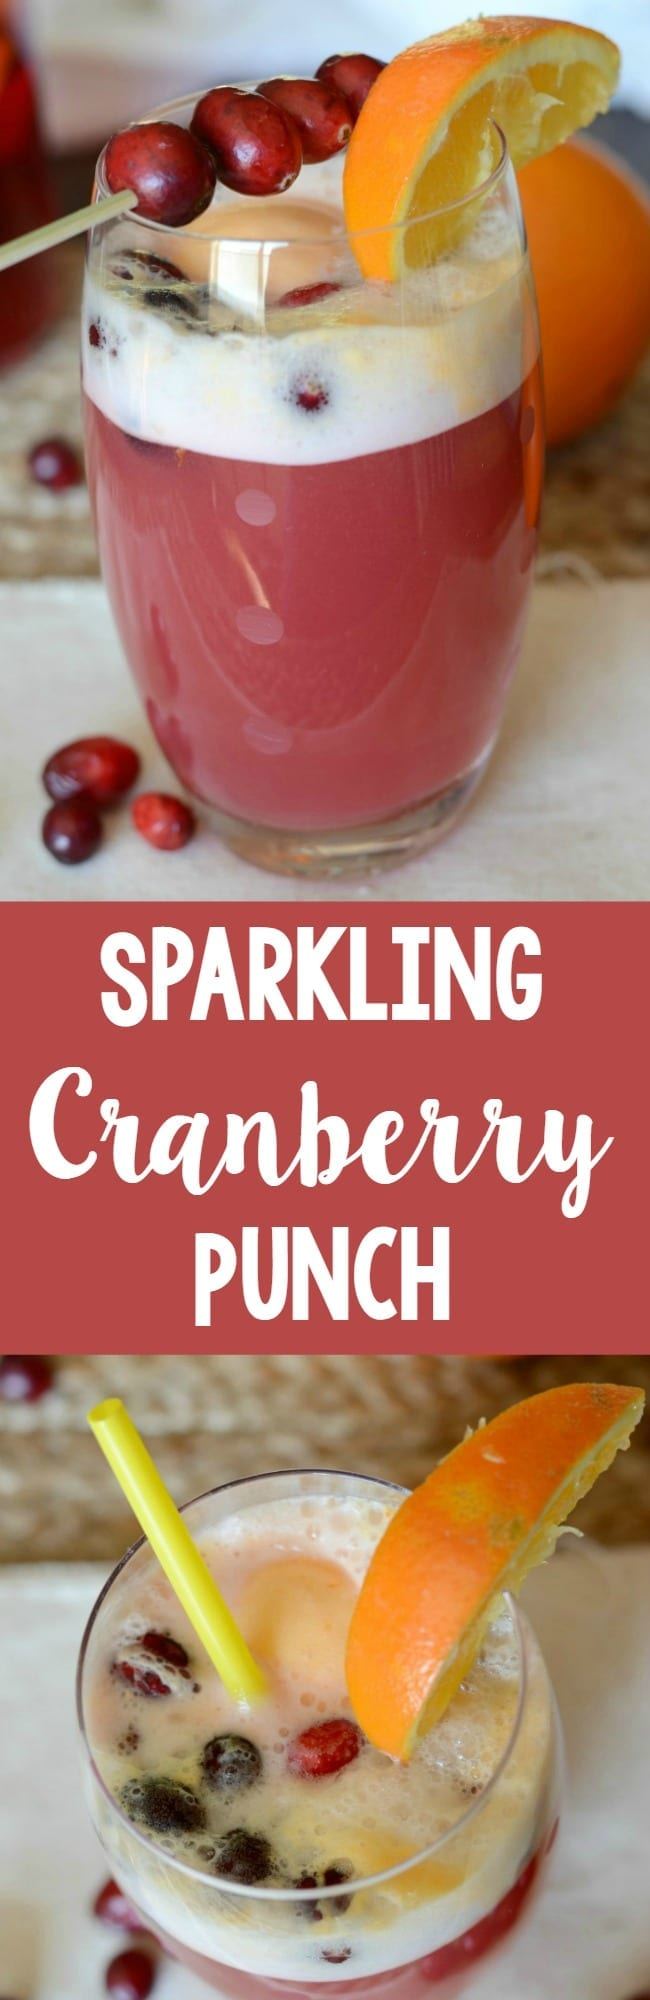 Sparkling cranberry punch recipe! You won't believe how easy this punch is to make! And perfect for a party!